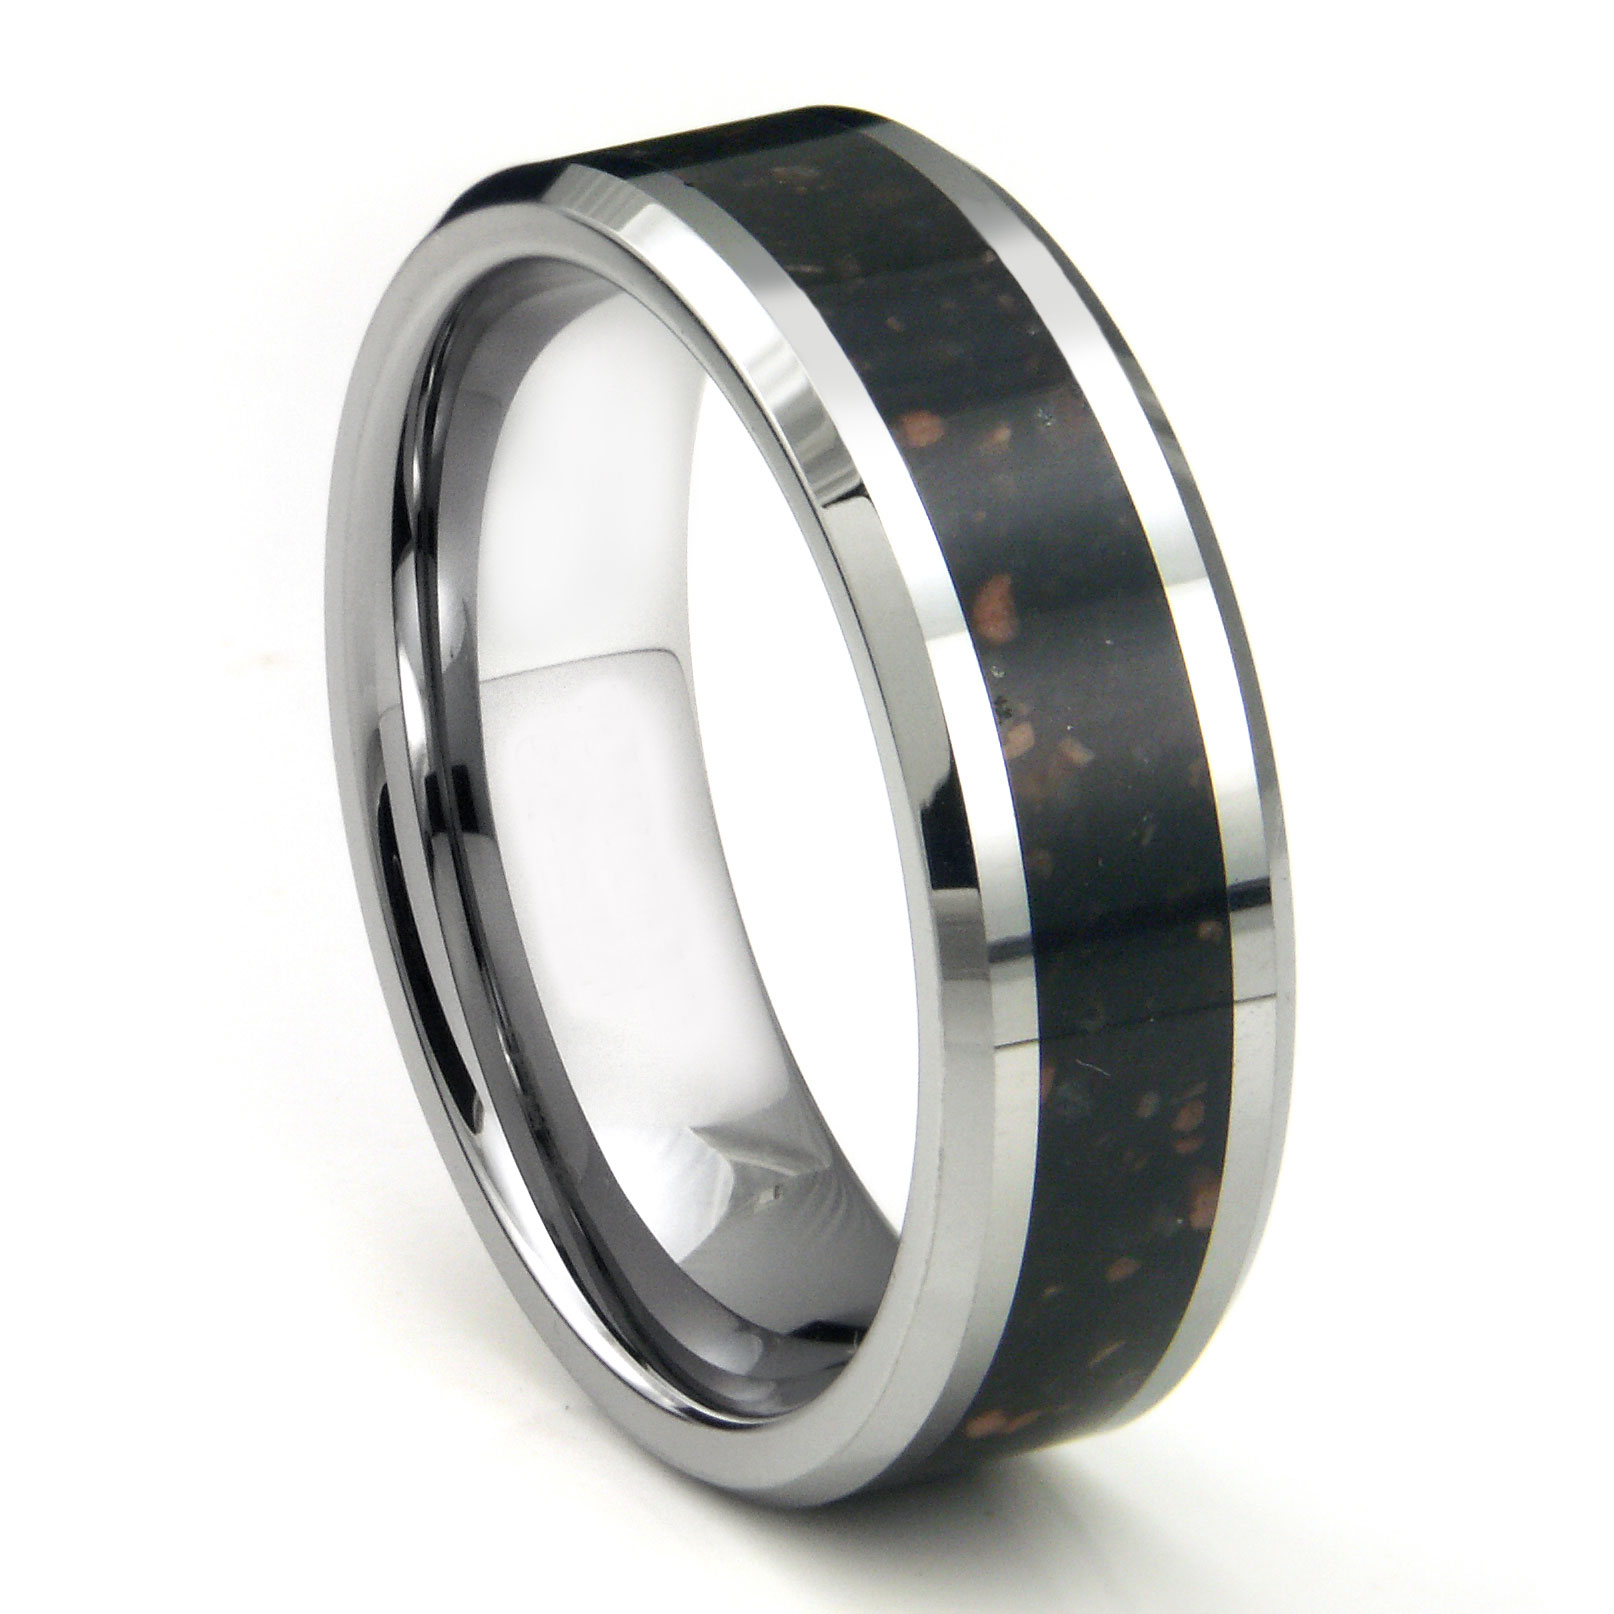 interior wedding men dp fit band with finished carbide black bands engagement tungsten s comfort beveled ezreal rose and polish top gold rings plated